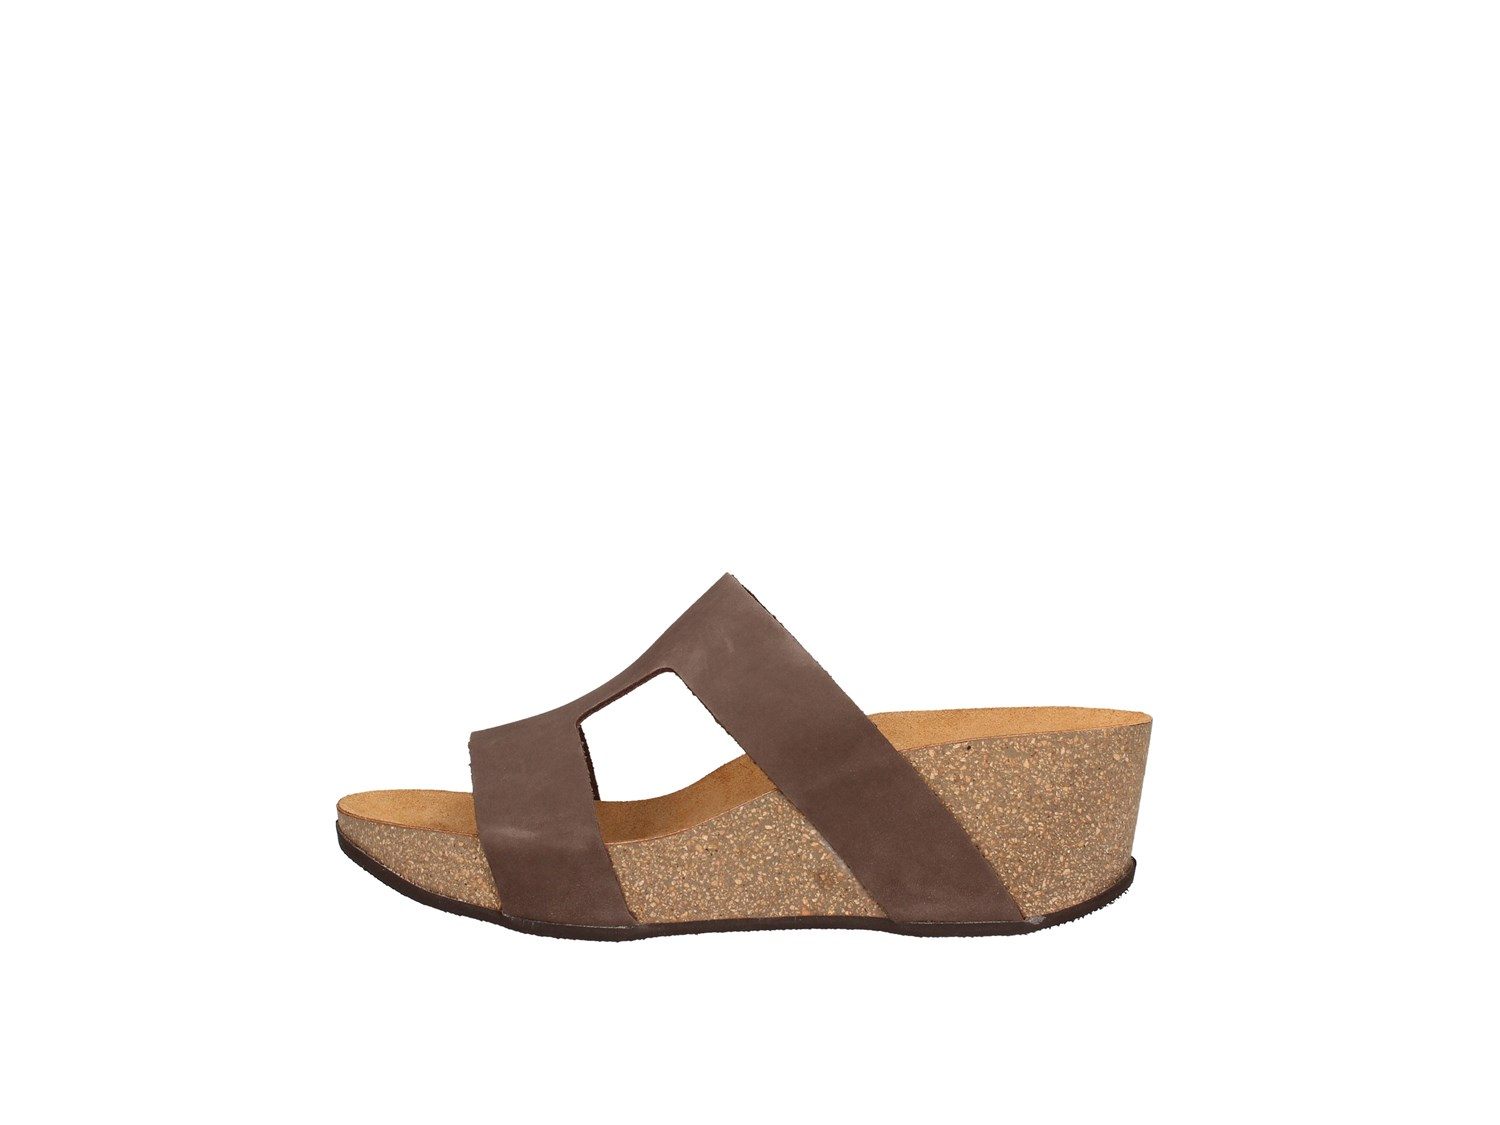 Frau 59g3 T Moro Shoes Women ousted